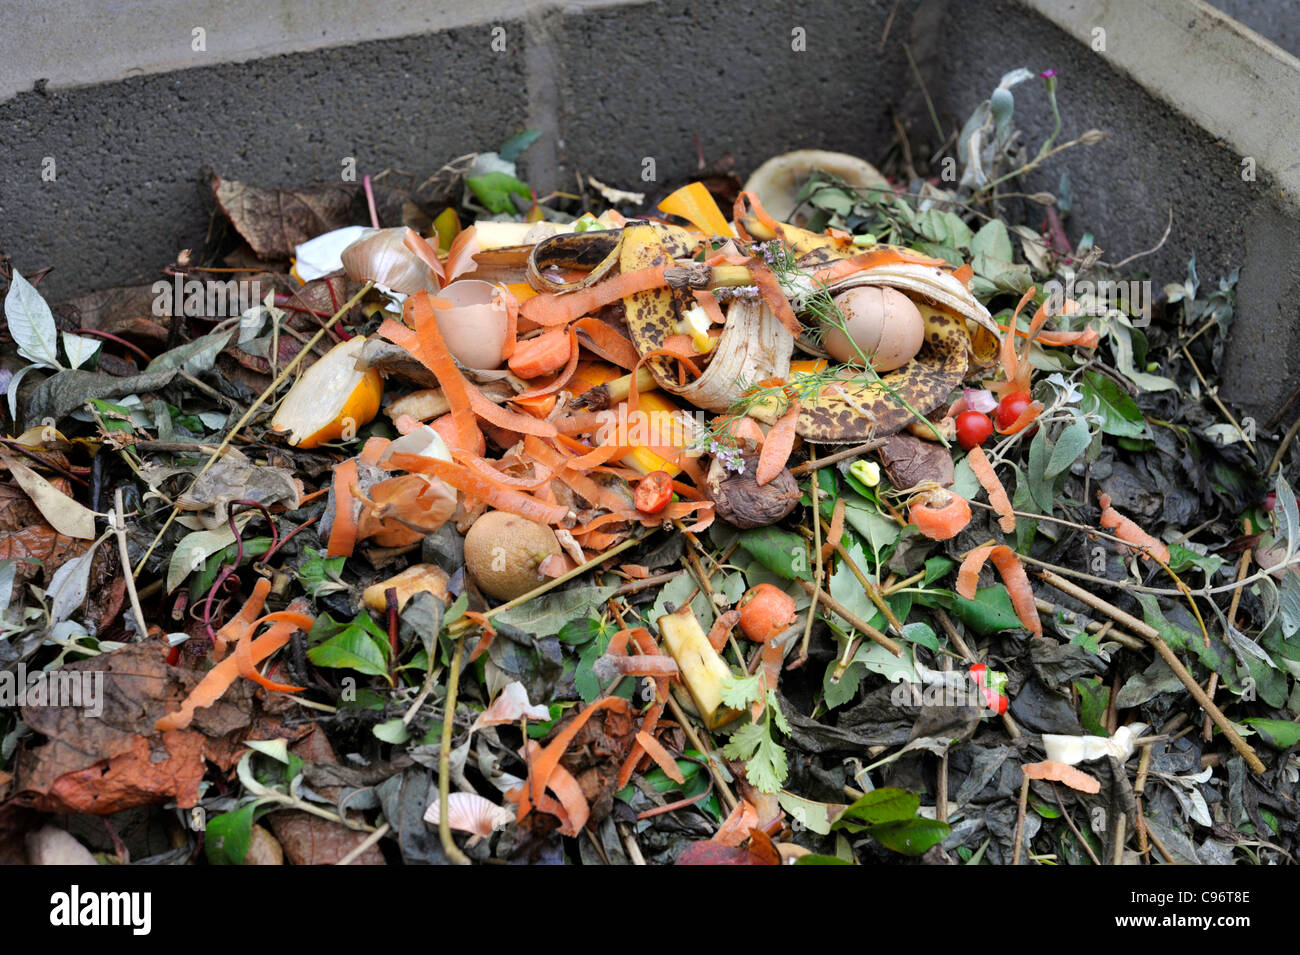 Garden compost heap with plant material and kitchen waste for Waste material images